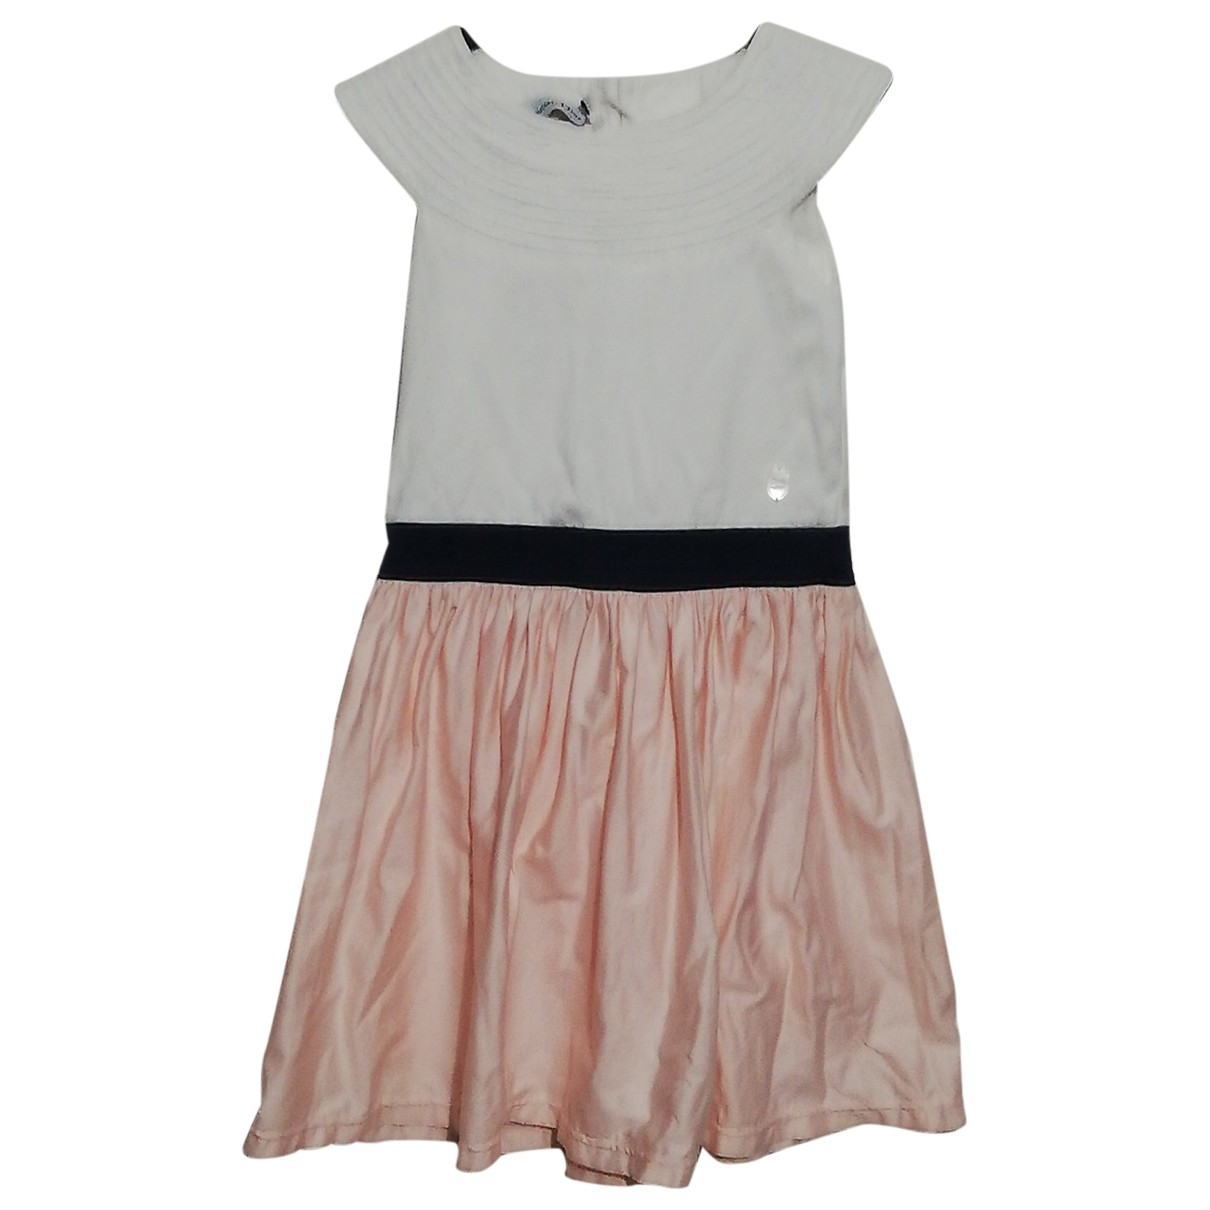 Dior \N Multicolour Cotton dress for Kids 8 years - up to 128cm FR